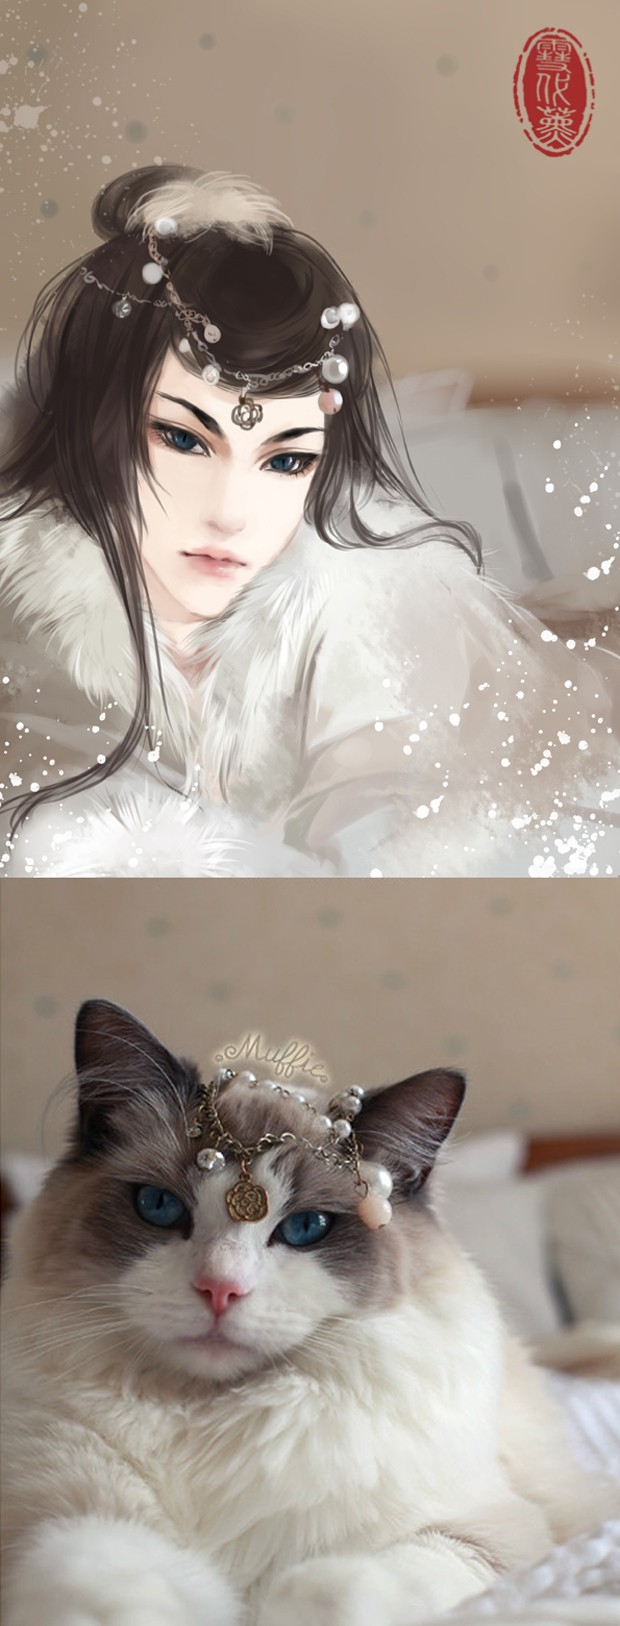 illustrations_based_on_cats_by_xuedaixun_7